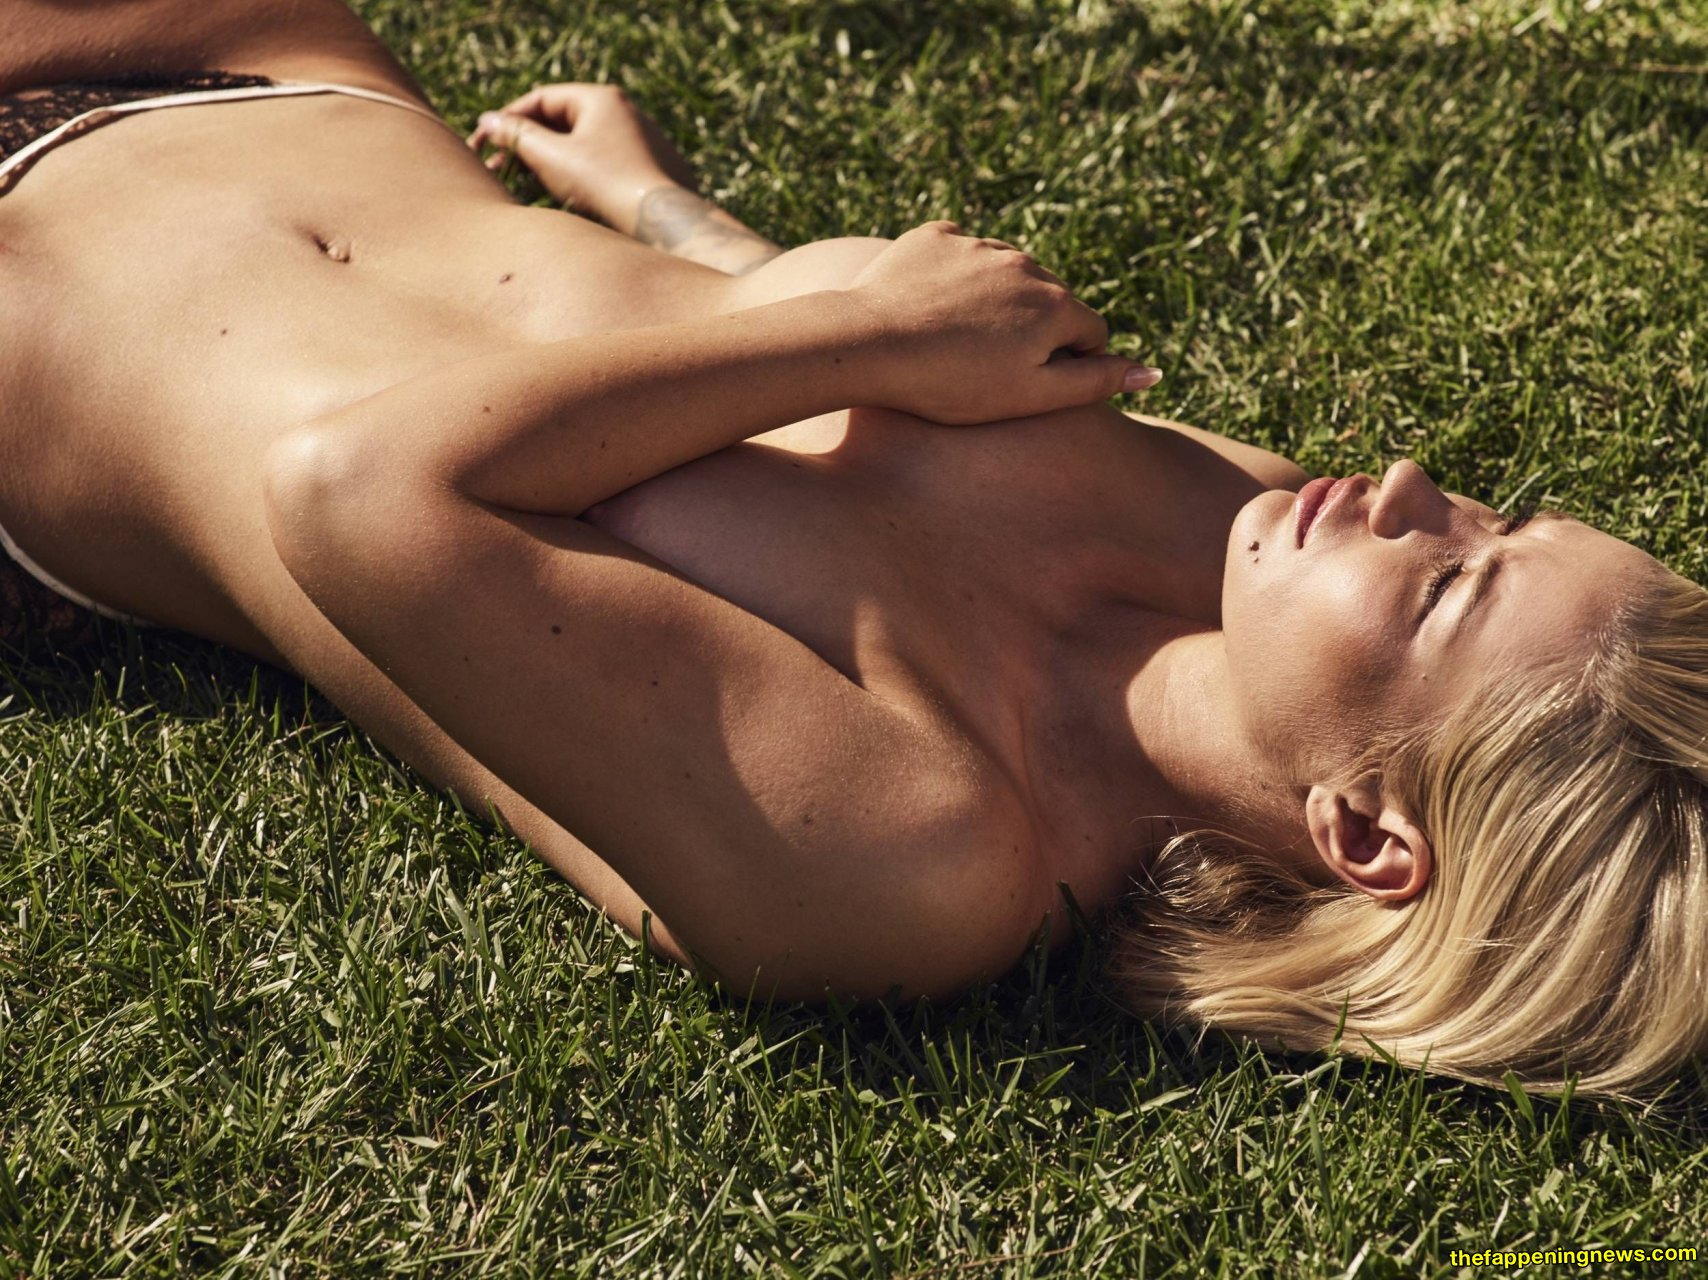 Kate Upton Squeeze Her Tits Nude On The Grass